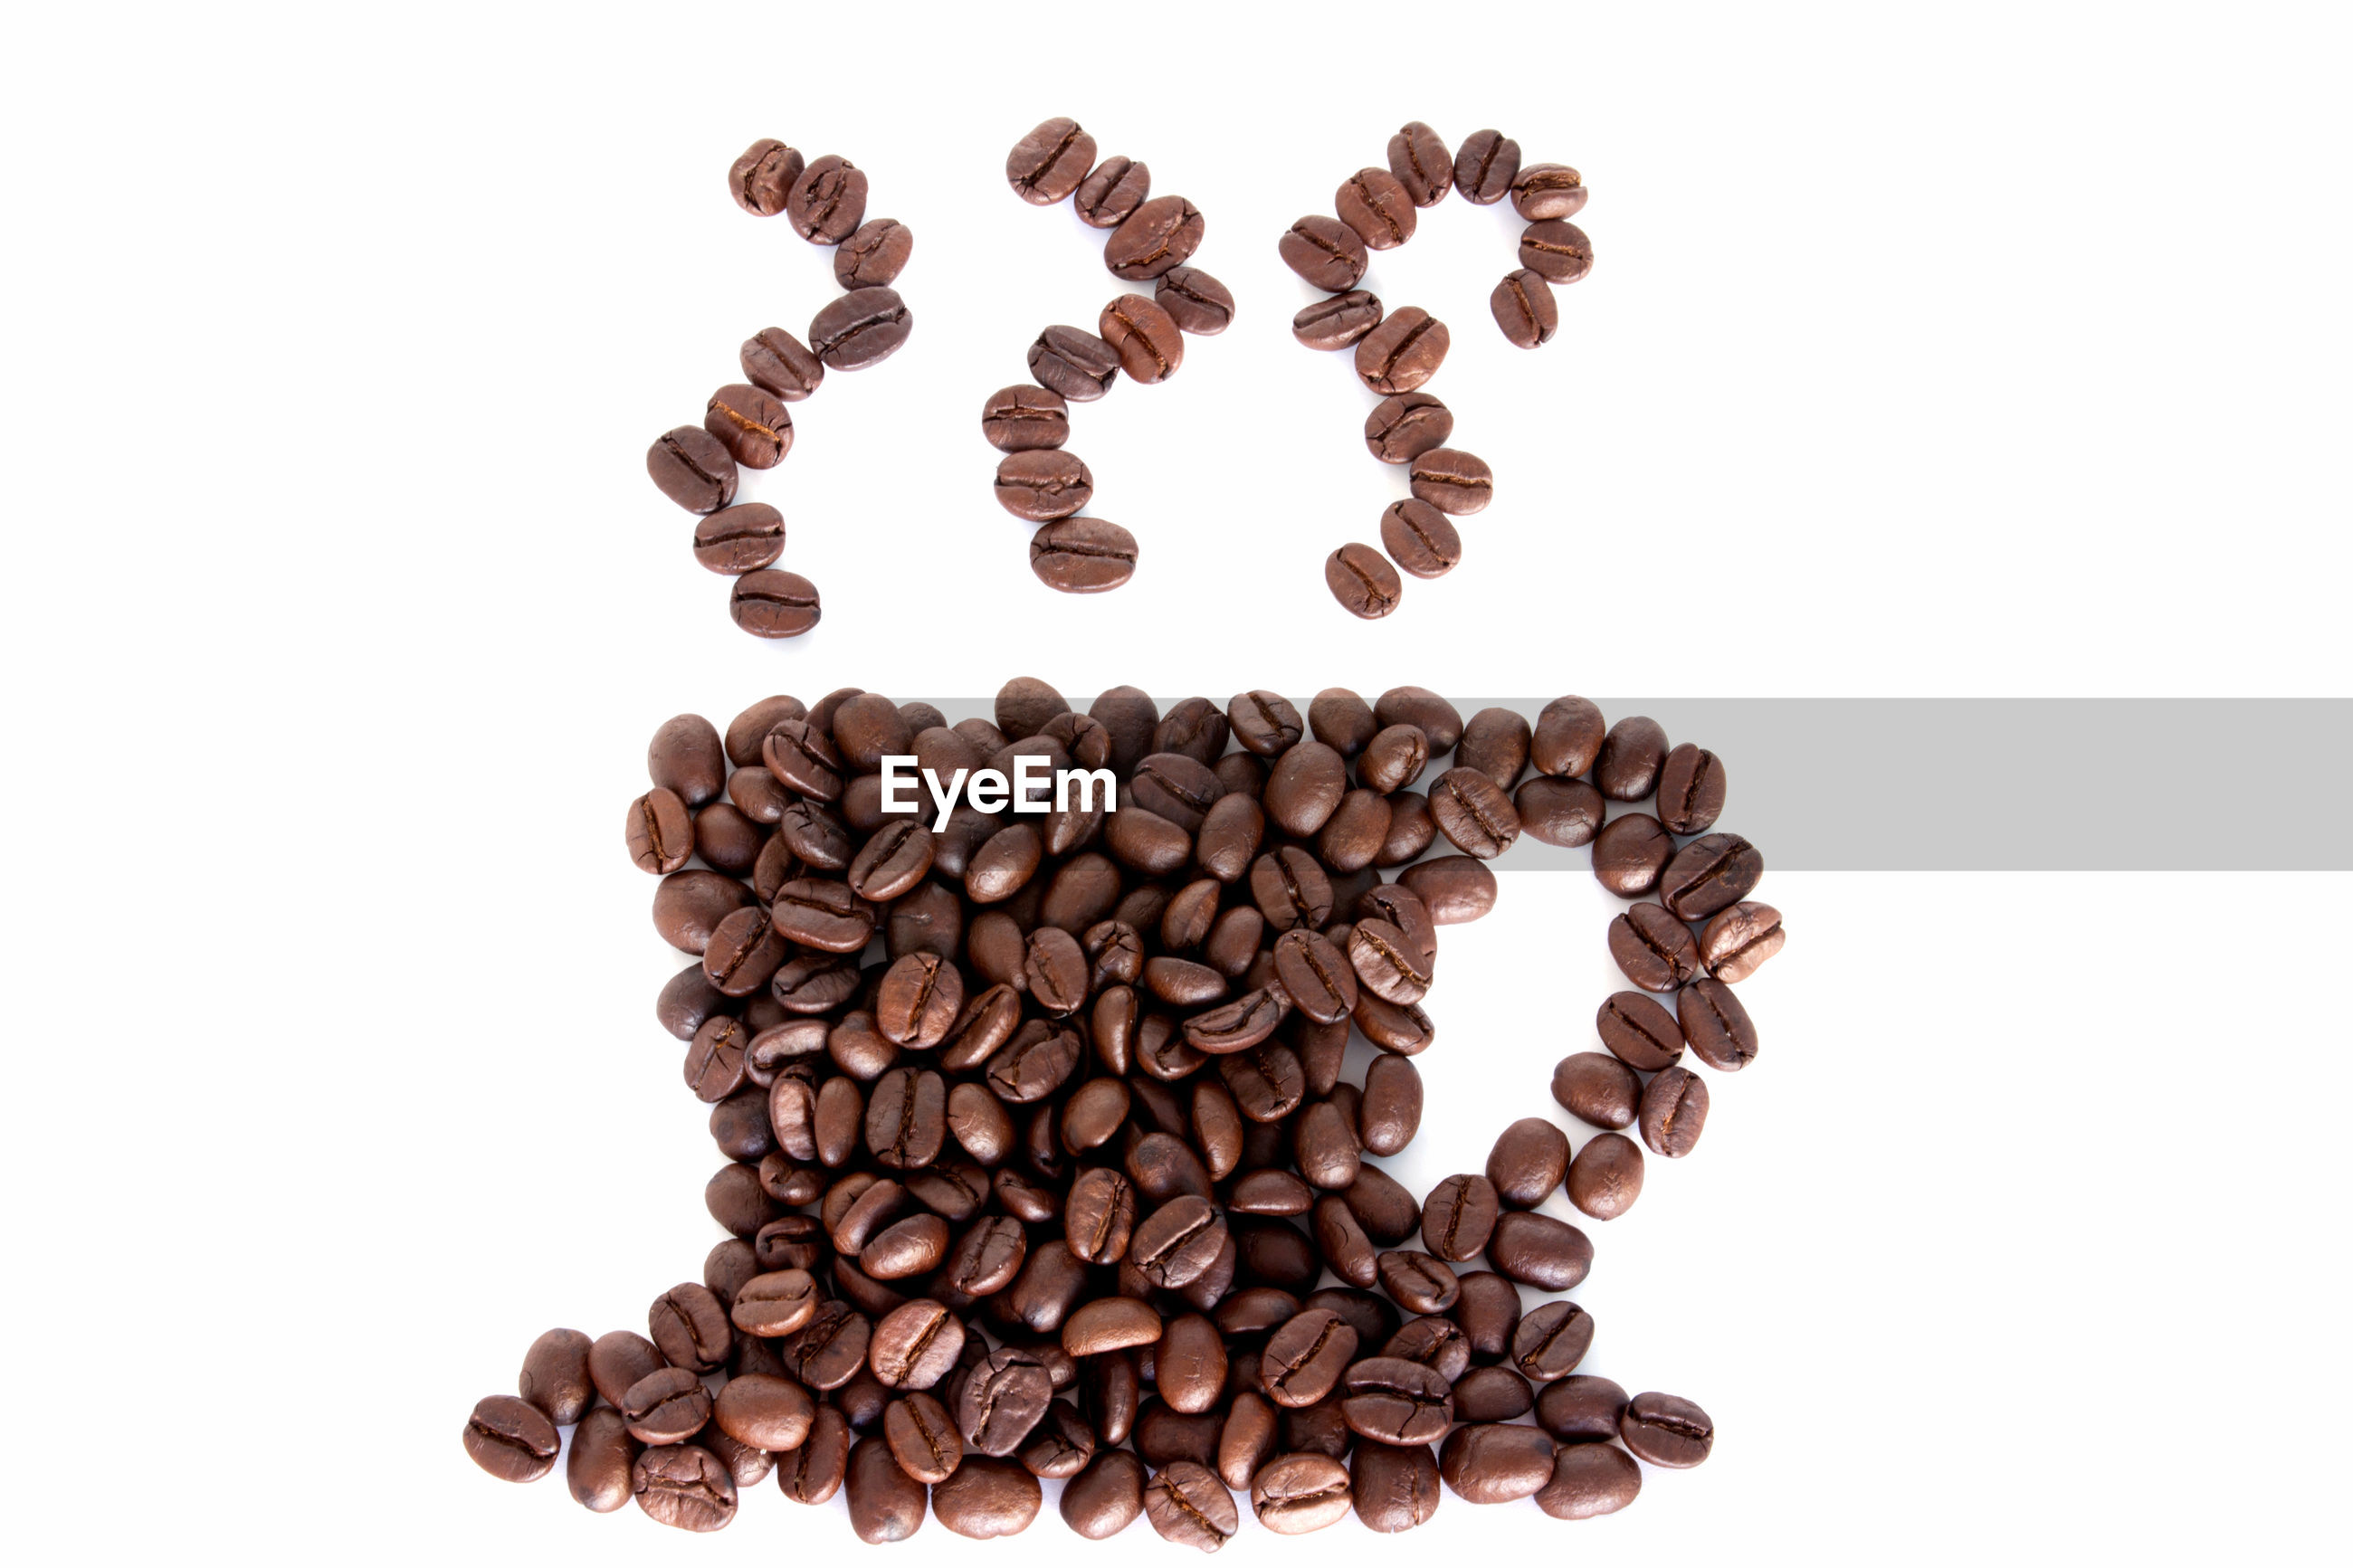 High angle view of cup made with coffee beans against white background